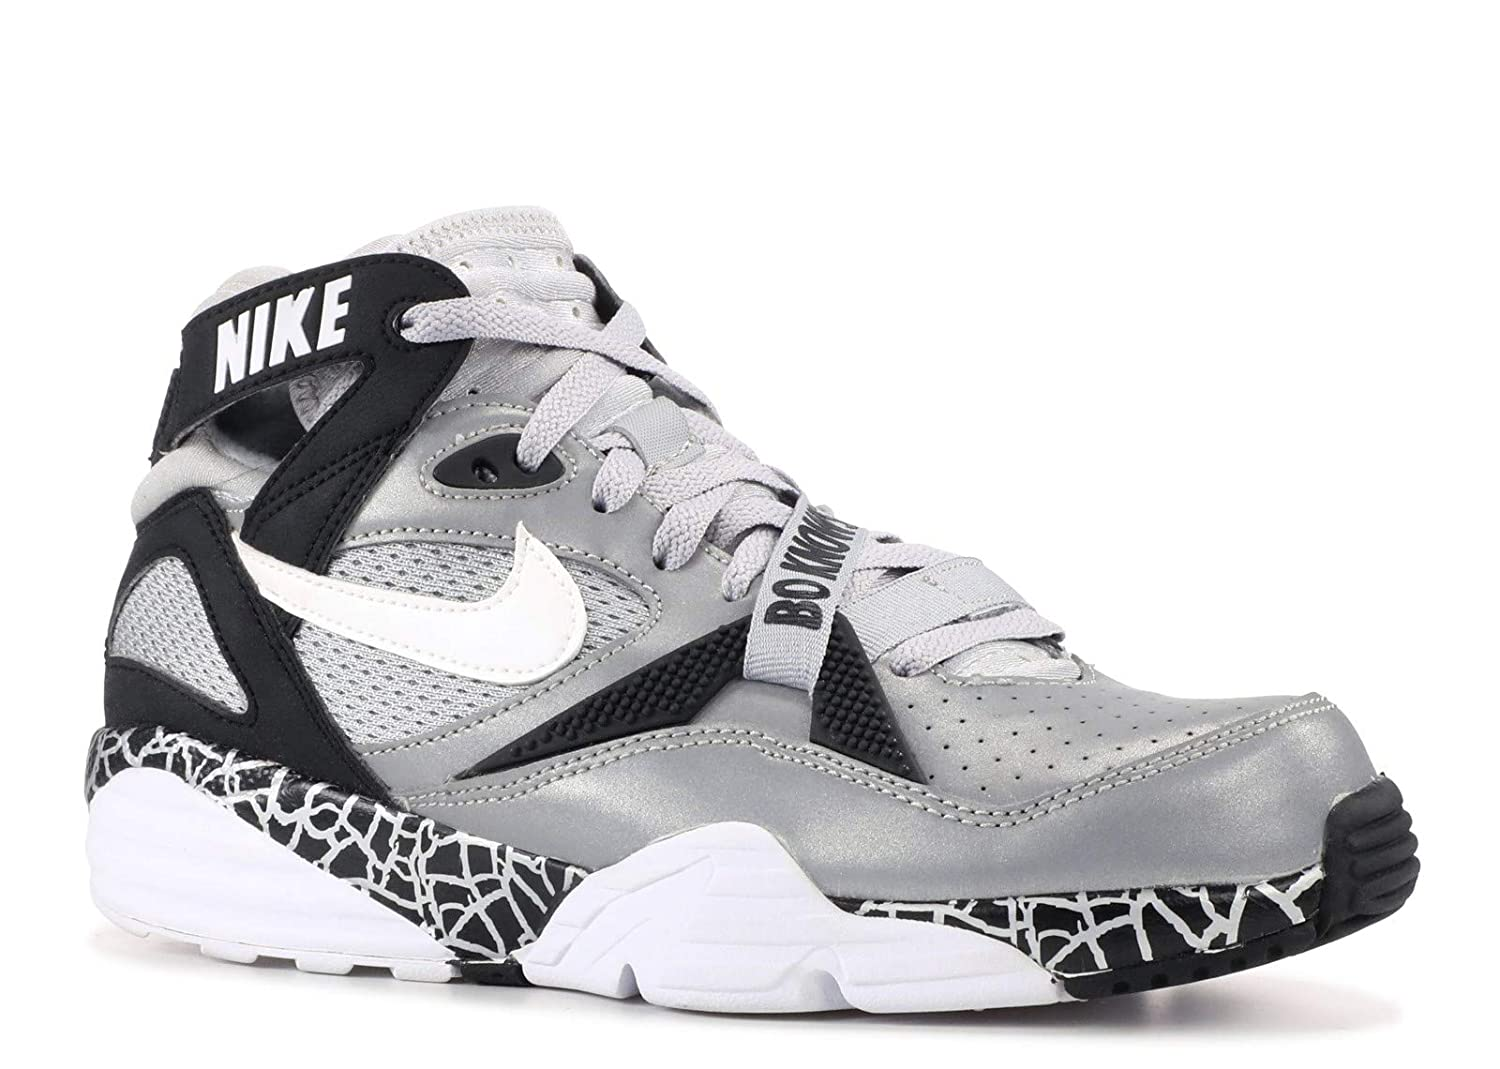 001 Max Mens Nike Qsnfl615147 Air Trainer '91 Ehid92 WE29IDHY